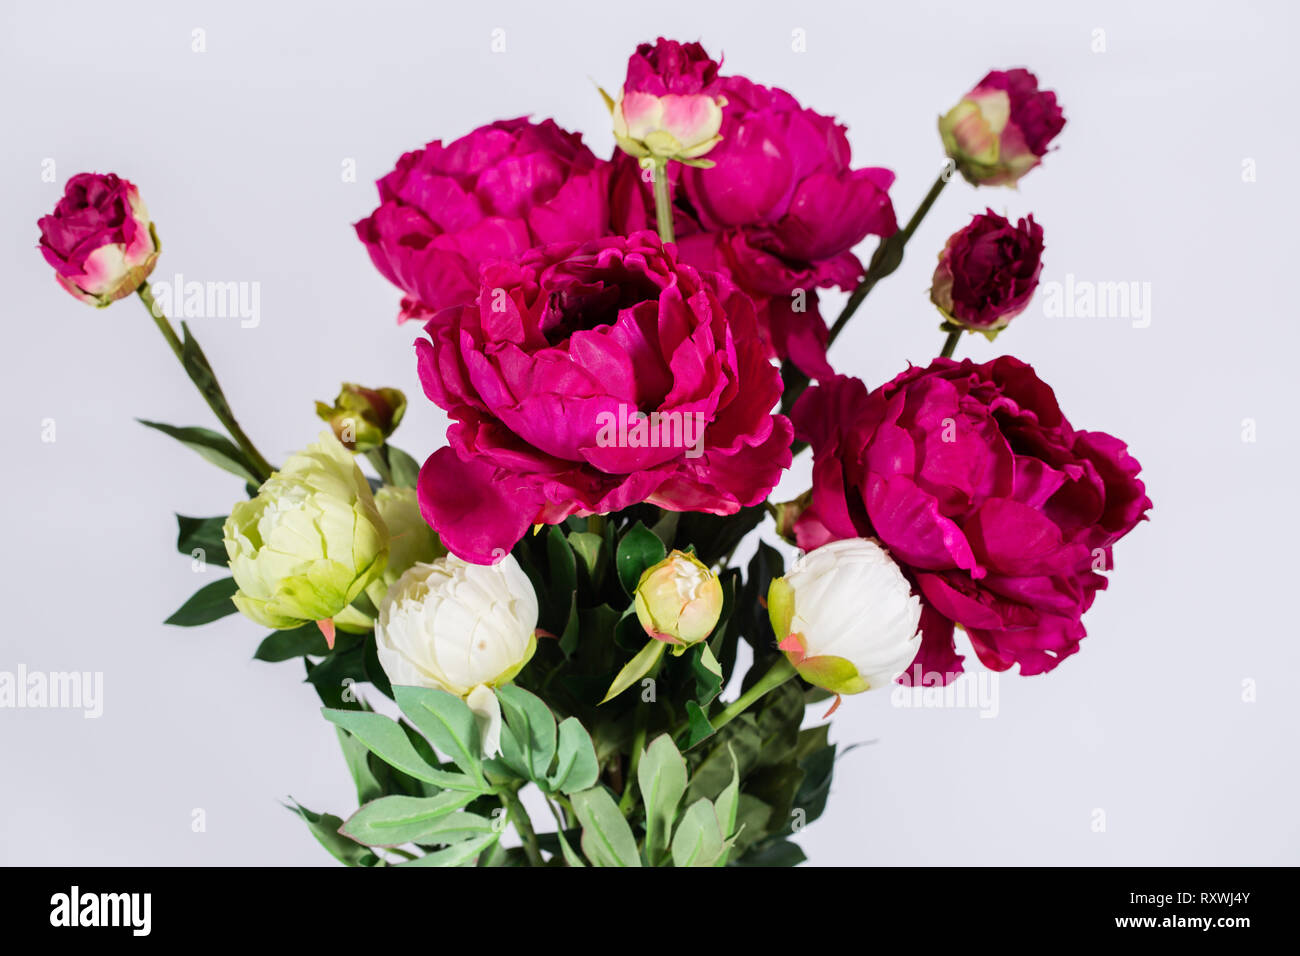 A Bouquet Of Beautiful Burgundy Peonies Stock Photo Alamy